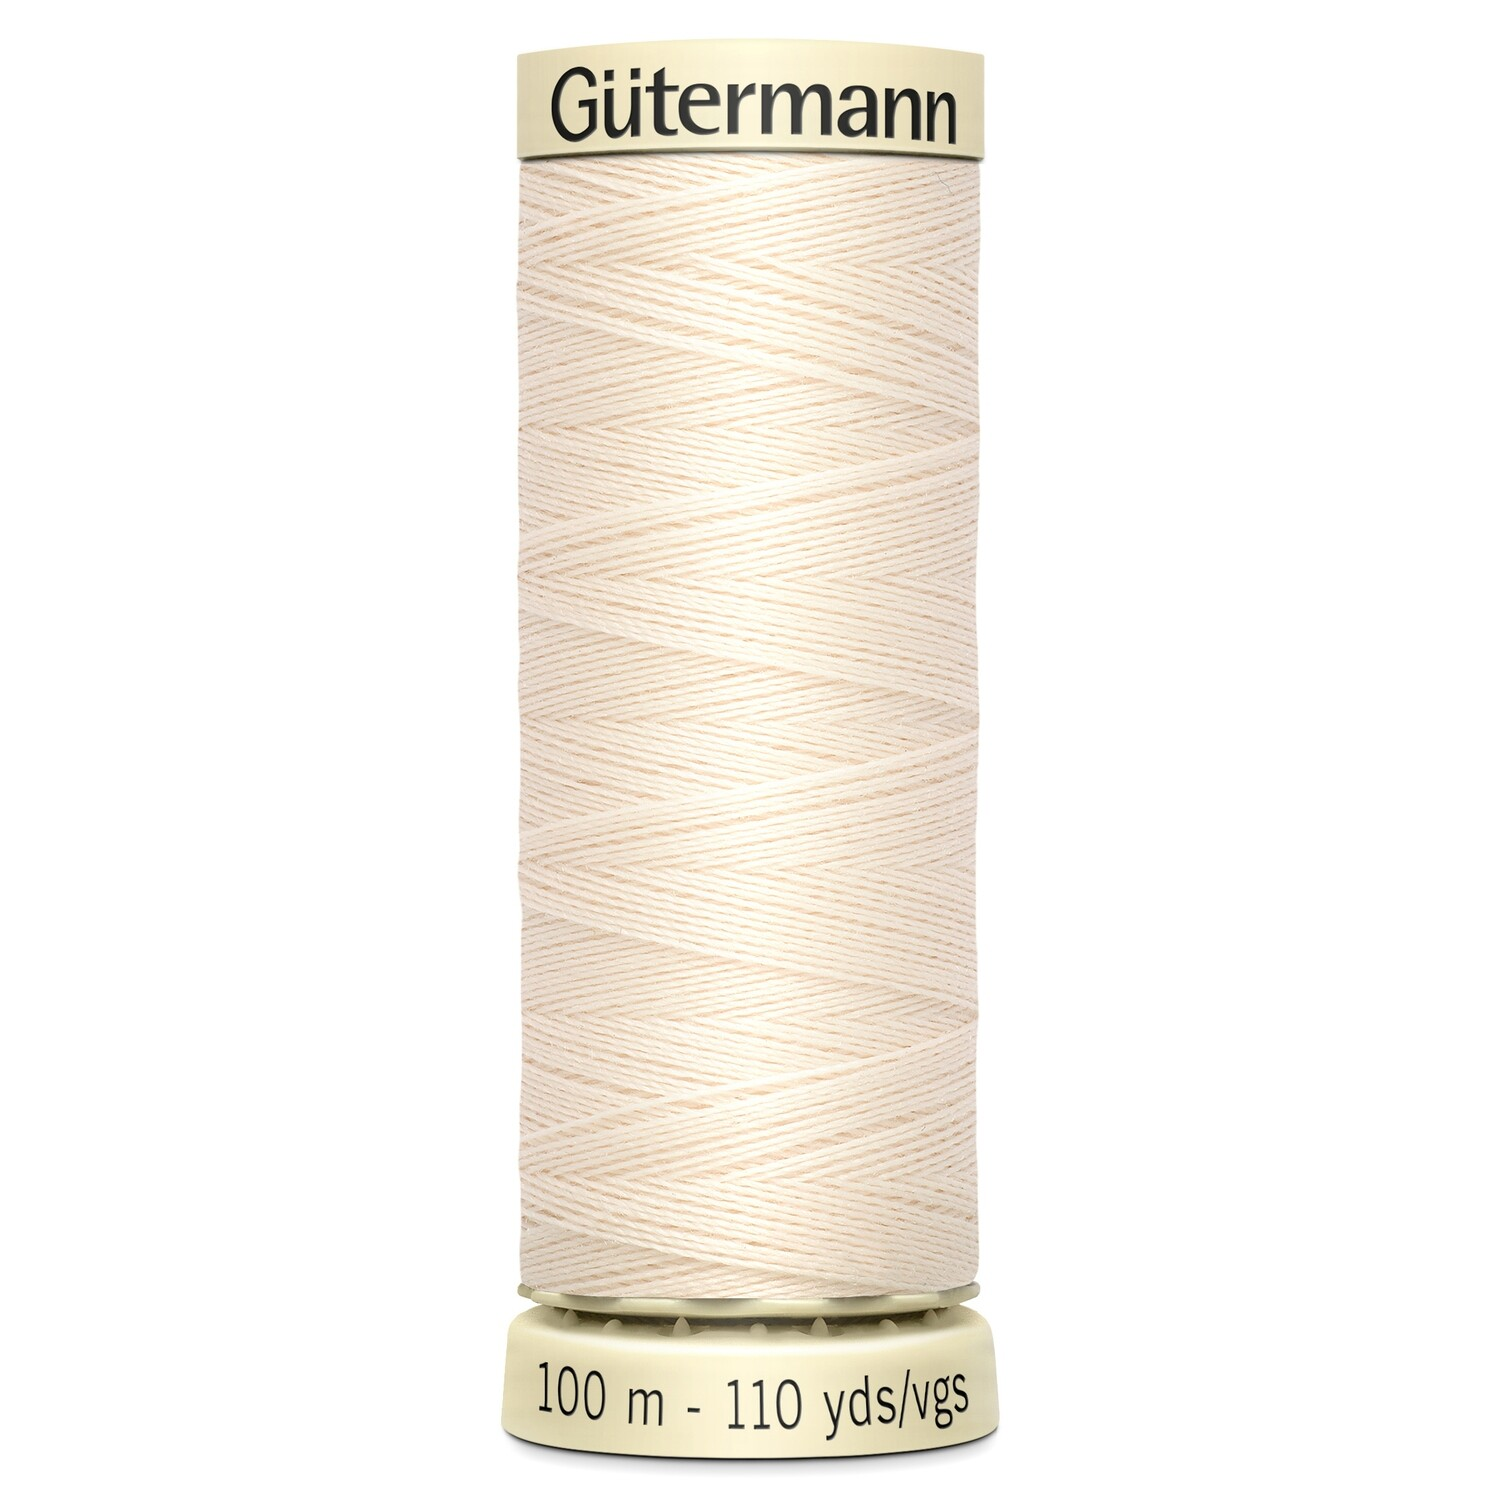 Gutermann Sew-All thread 802